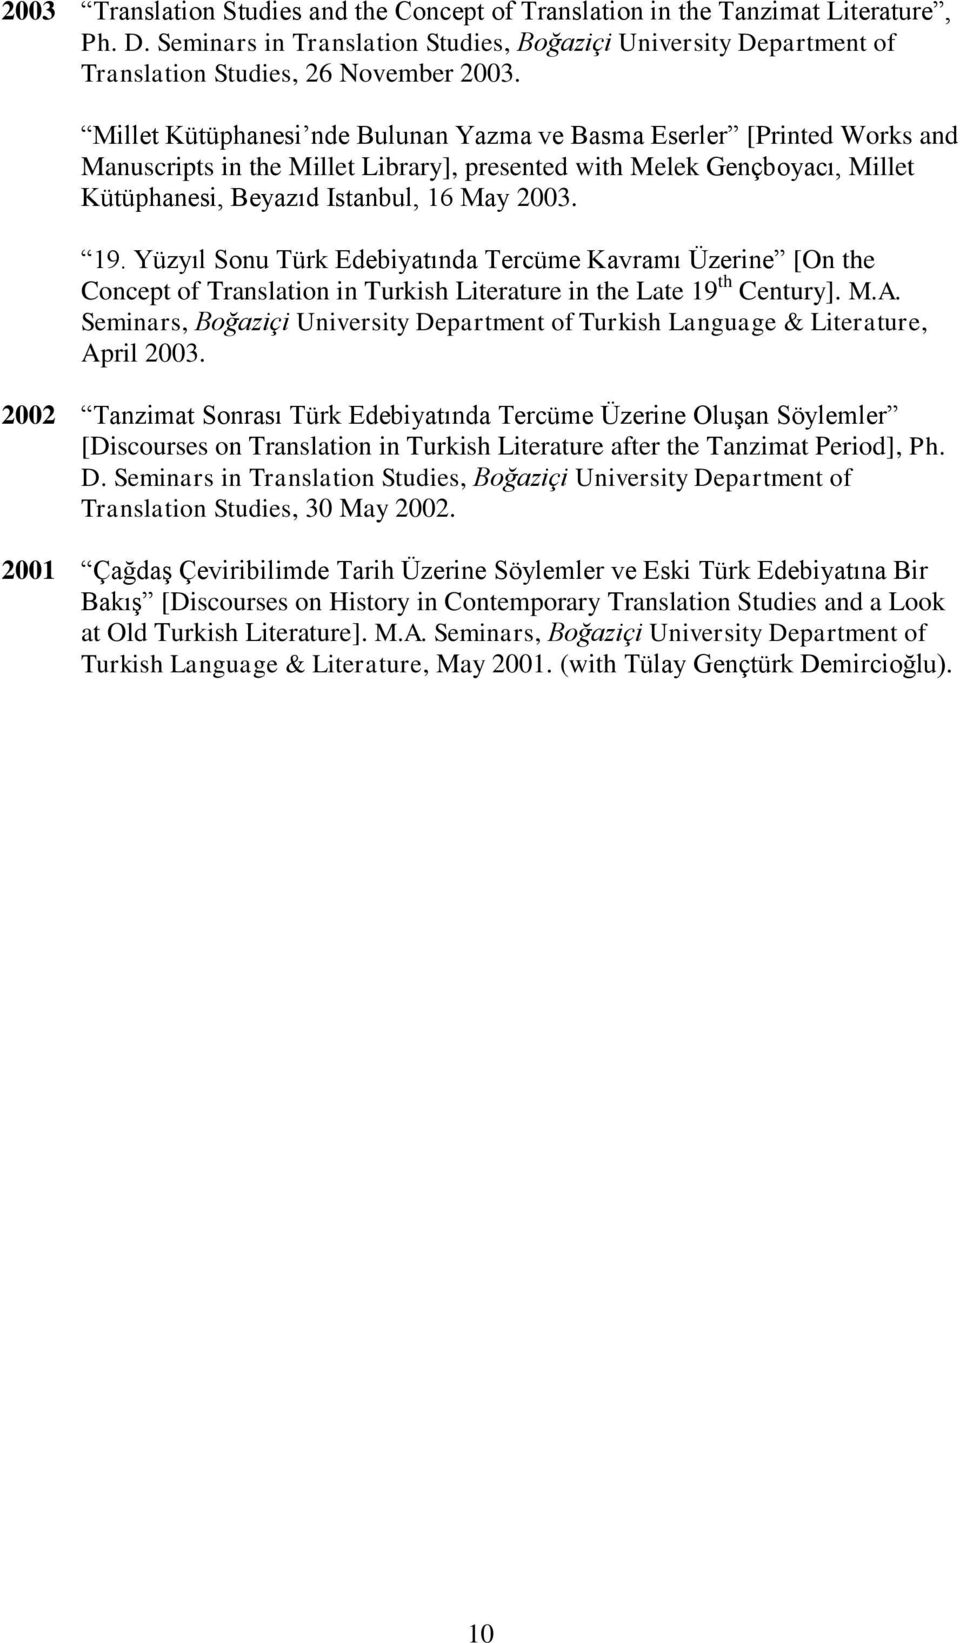 Yüzyıl Sonu Türk Edebiyatında Tercüme Kavramı Üzerine [On the Concept of Translation in Turkish Literature in the Late 19 th Century]. M.A.